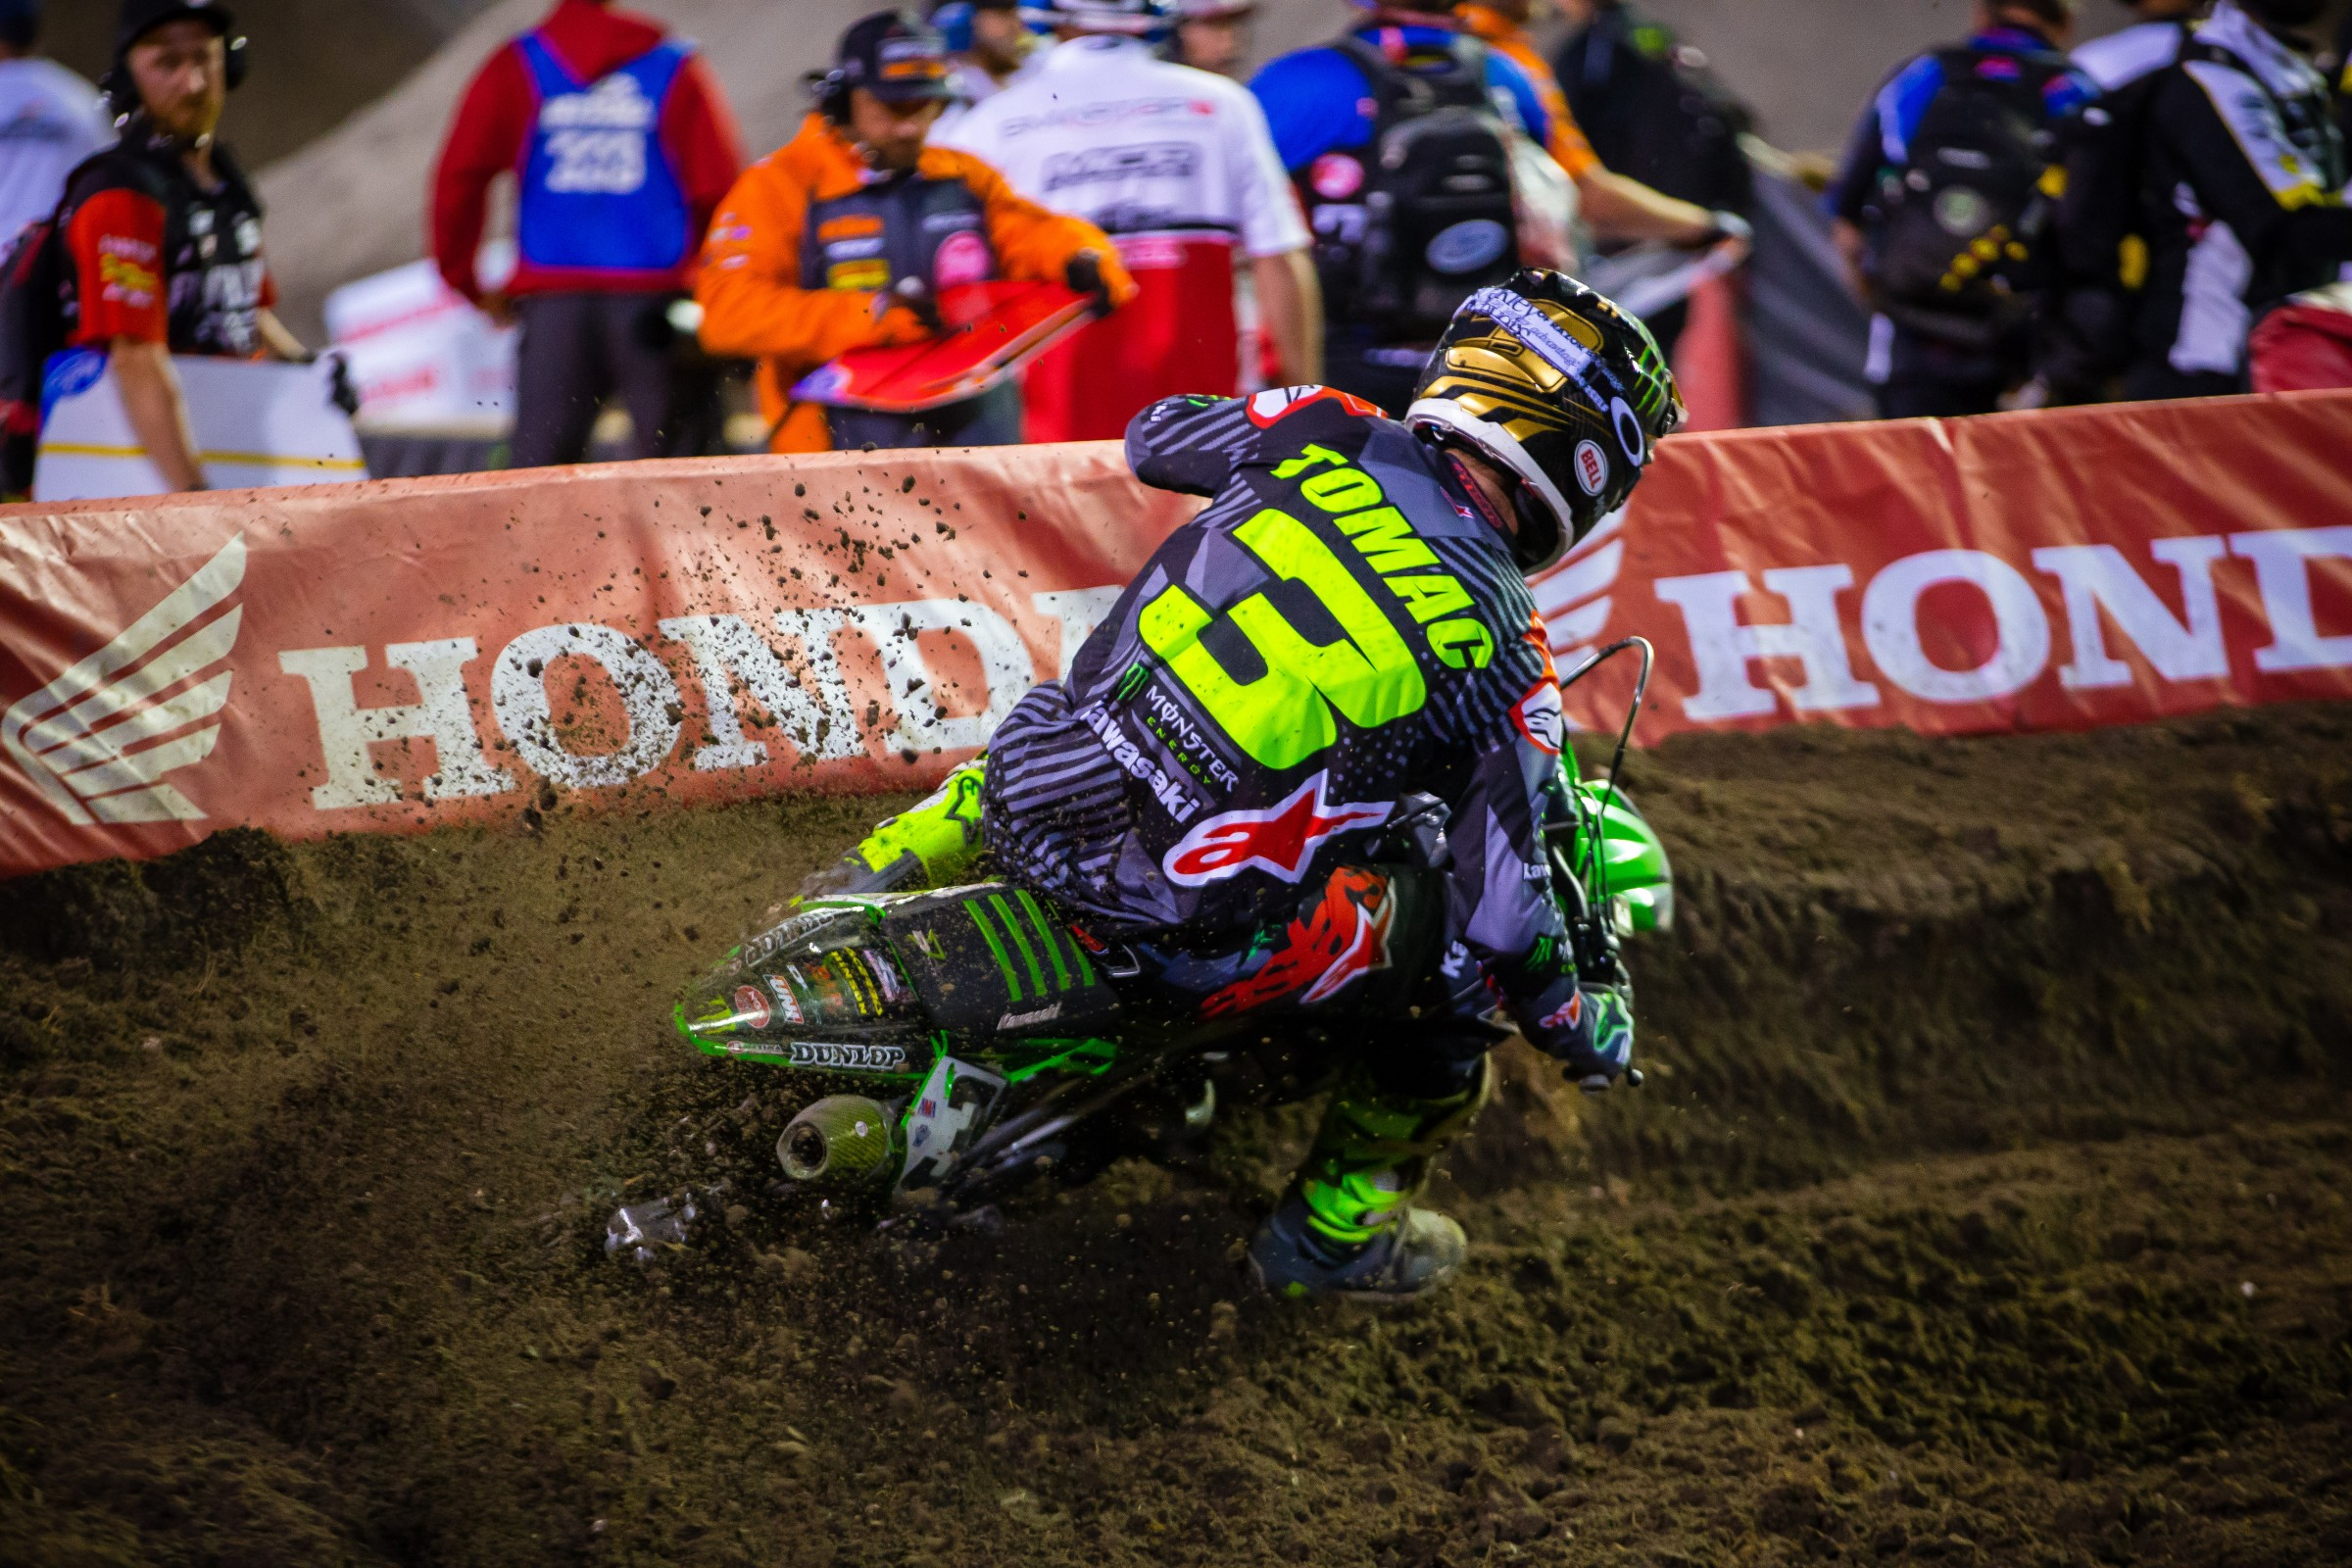 Eli Tomac fought back from an early crash to take second.